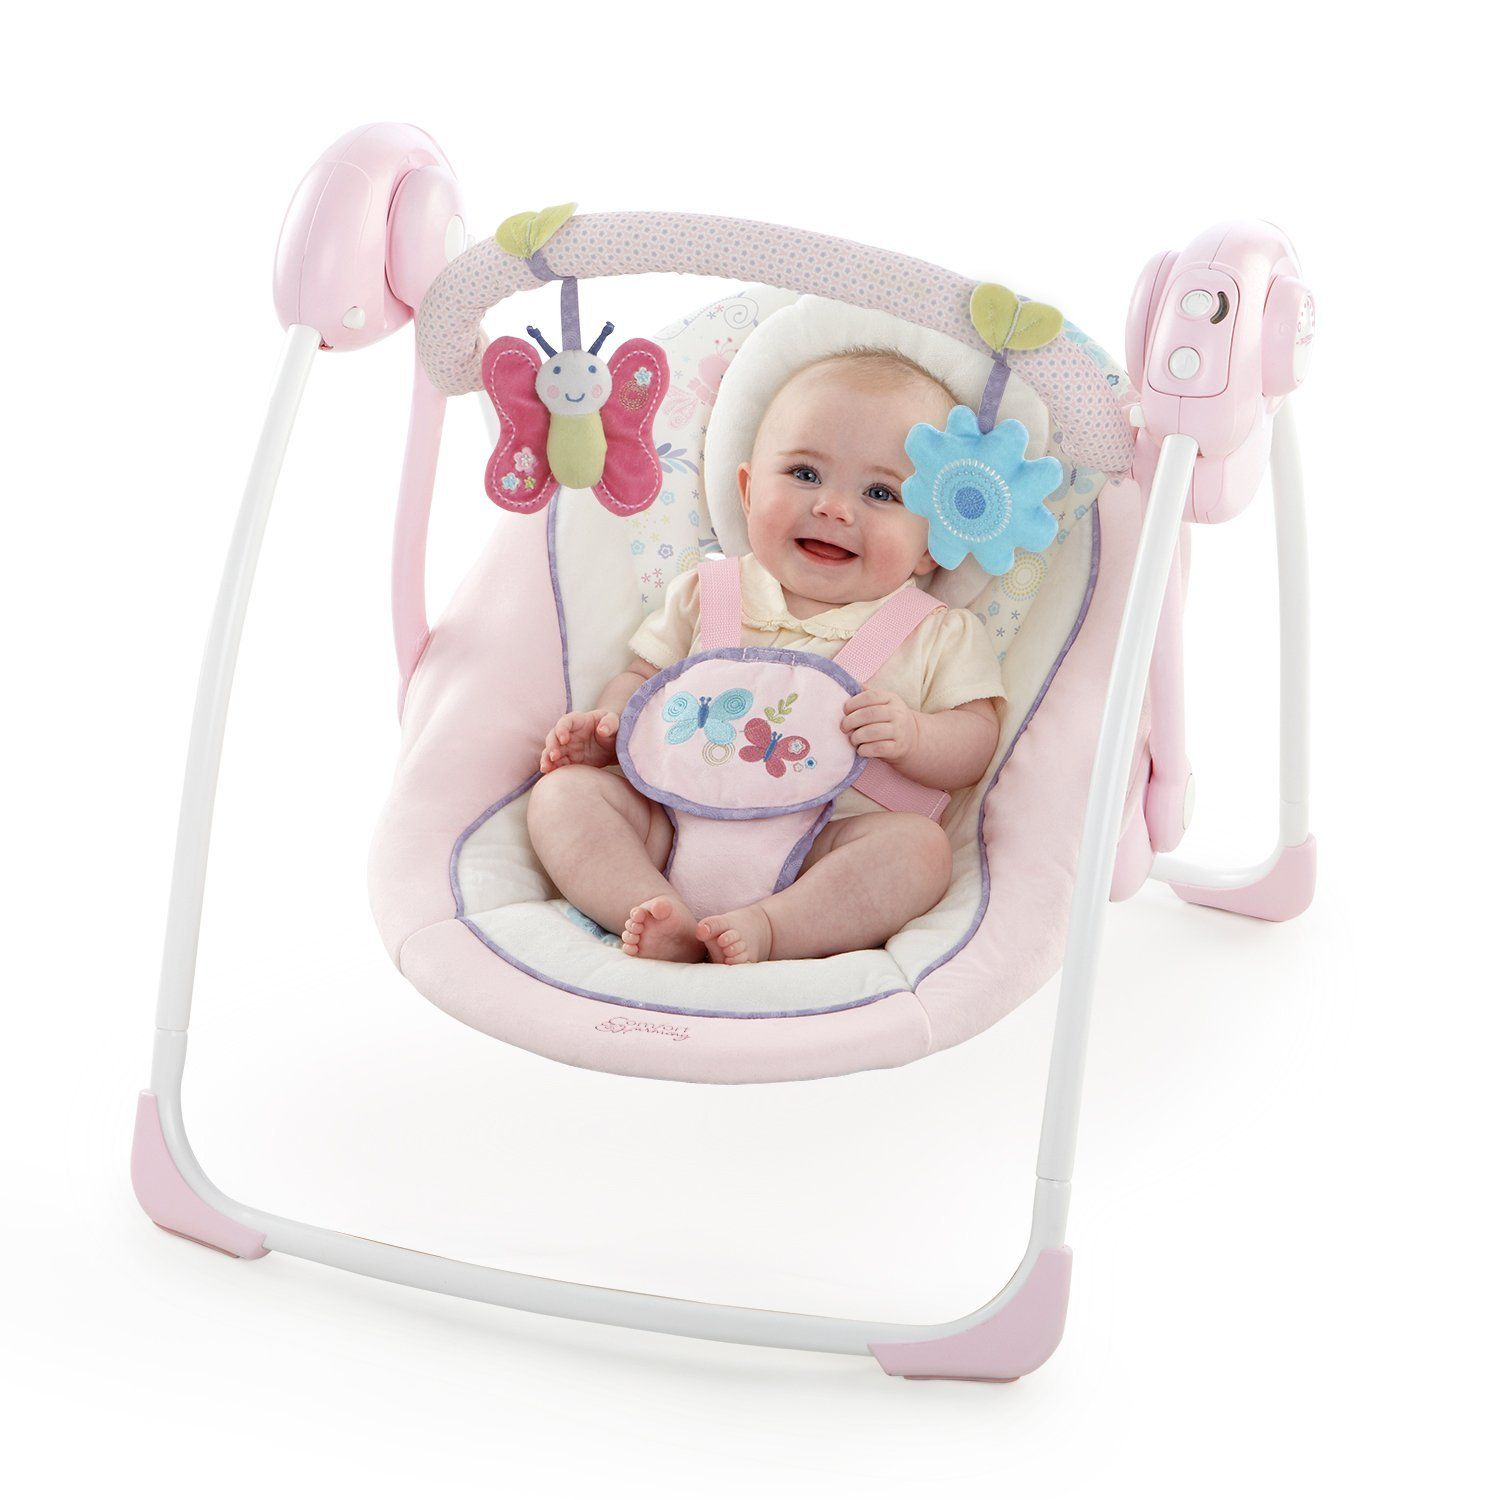 Comfort Harmony Penelope Petals Portable Swing Walmart Com Bright Starts Baby Swings Perfect Baby Gift